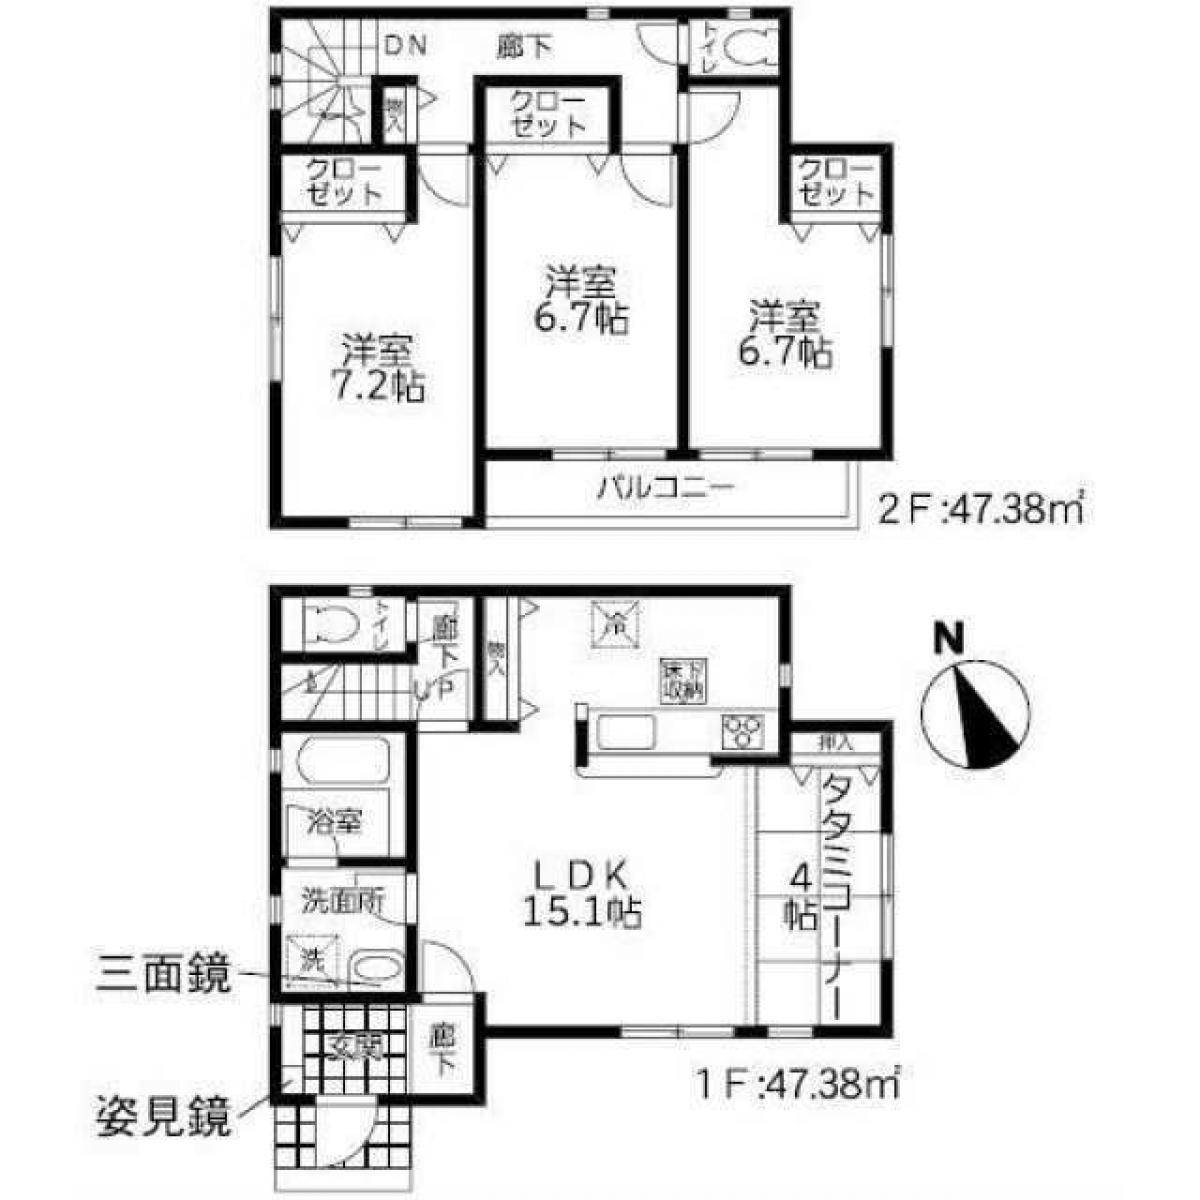 Property listed For Sale in Hachioji Shi, Japan